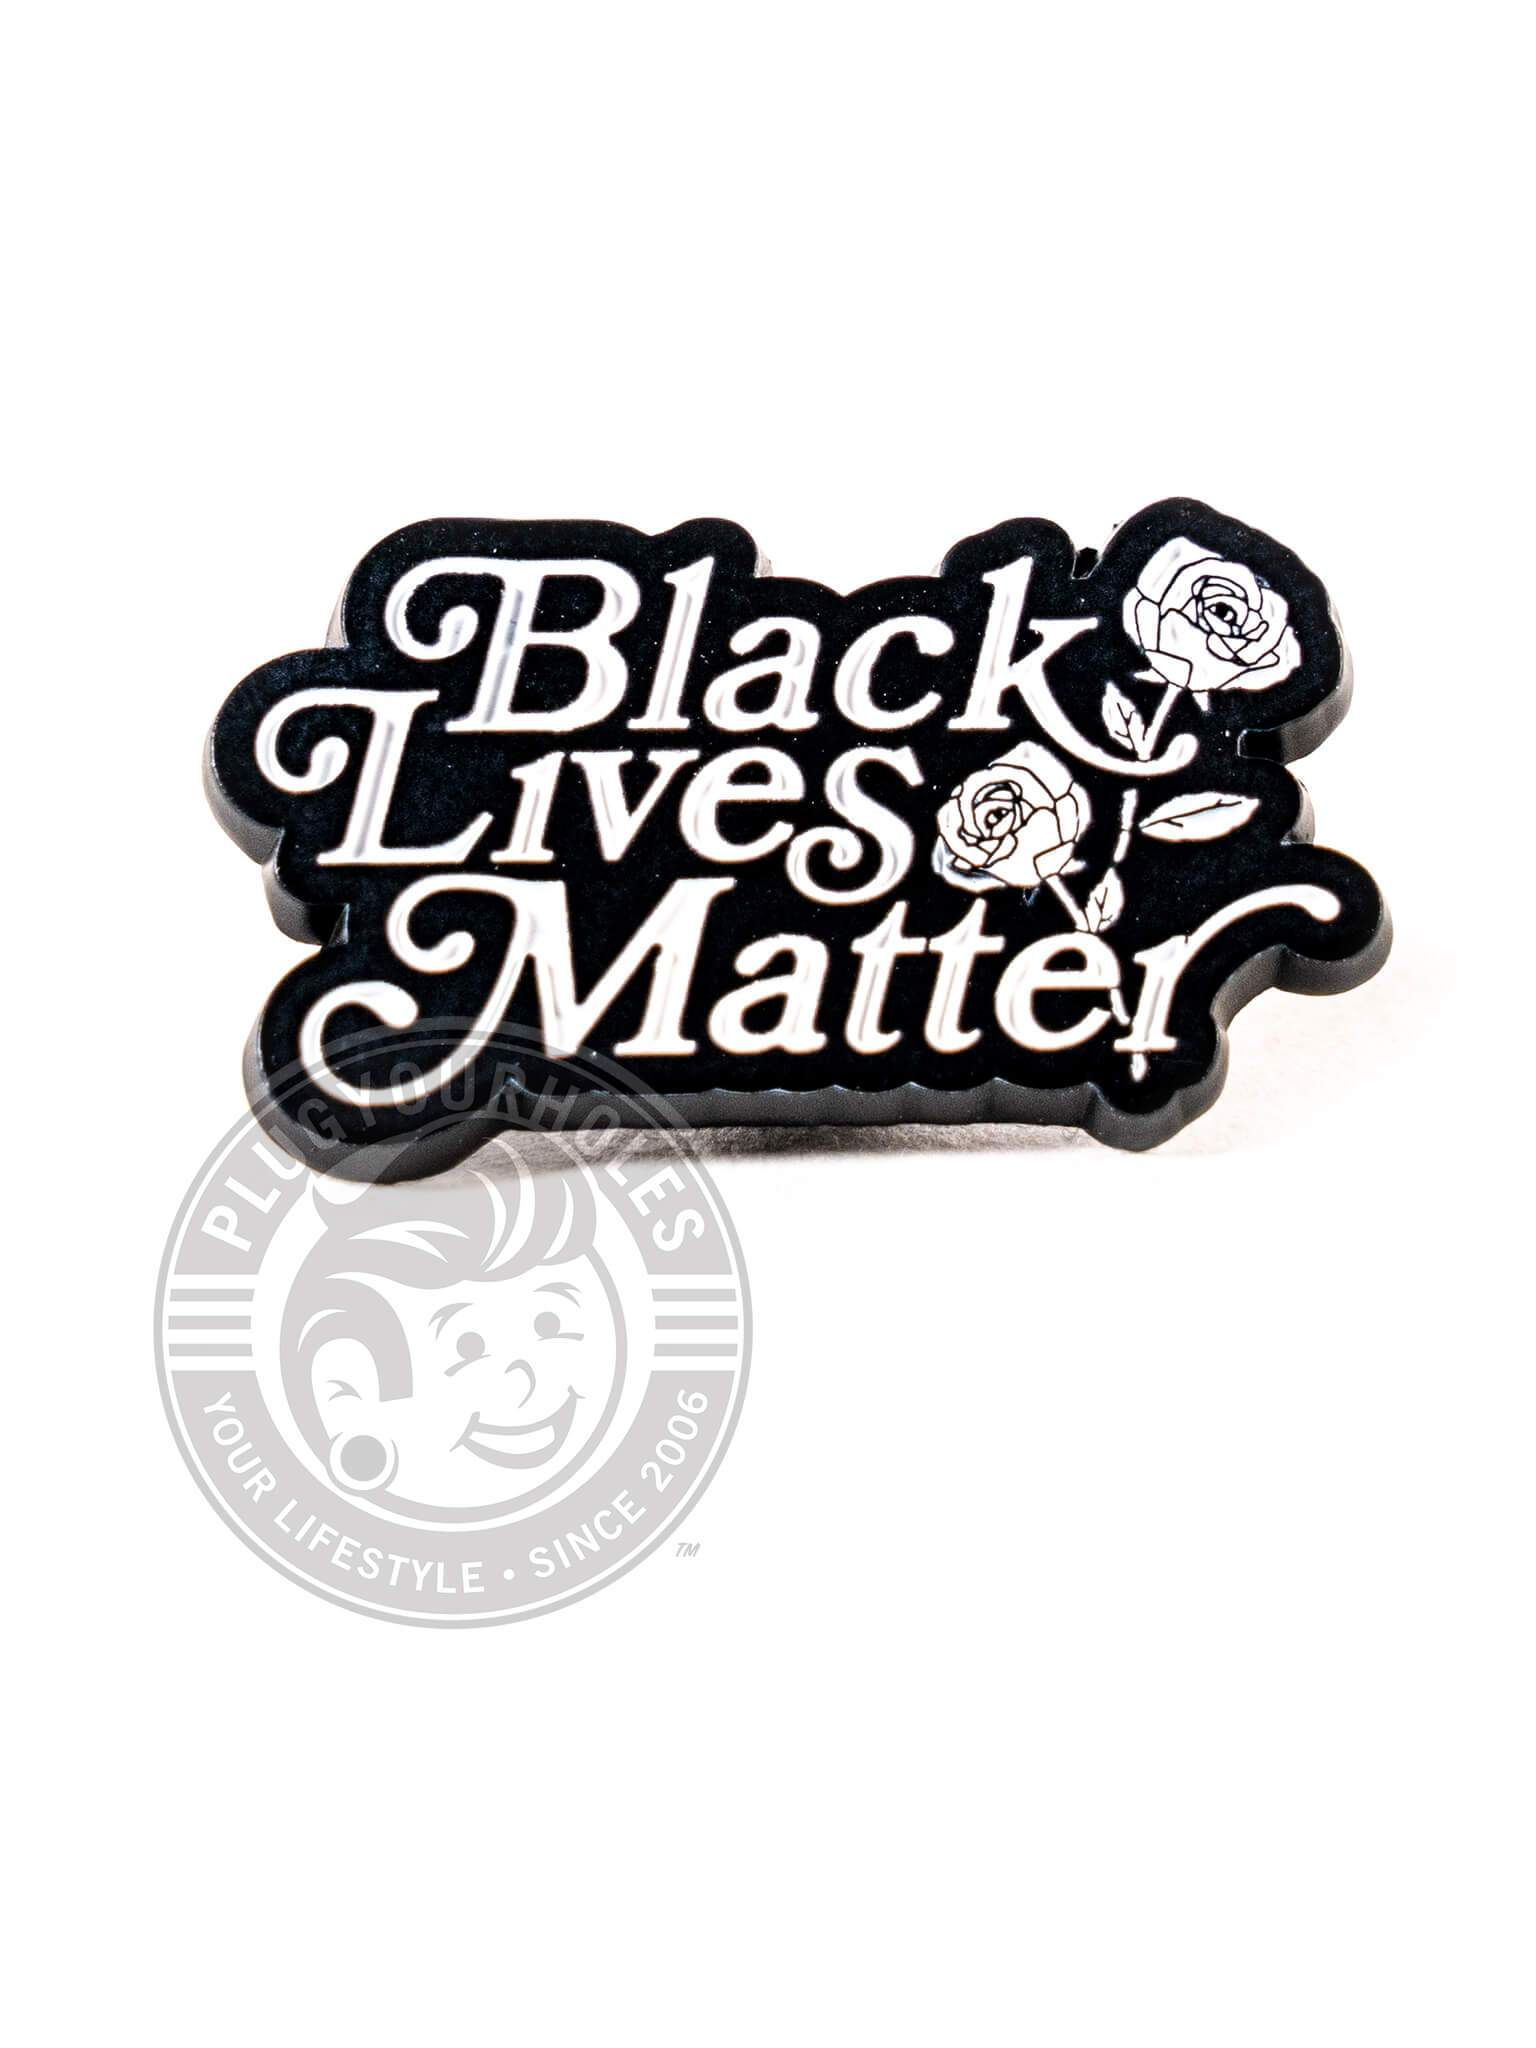 Black Lives Matter (by @jonisthenewblk) - Enamel Pin